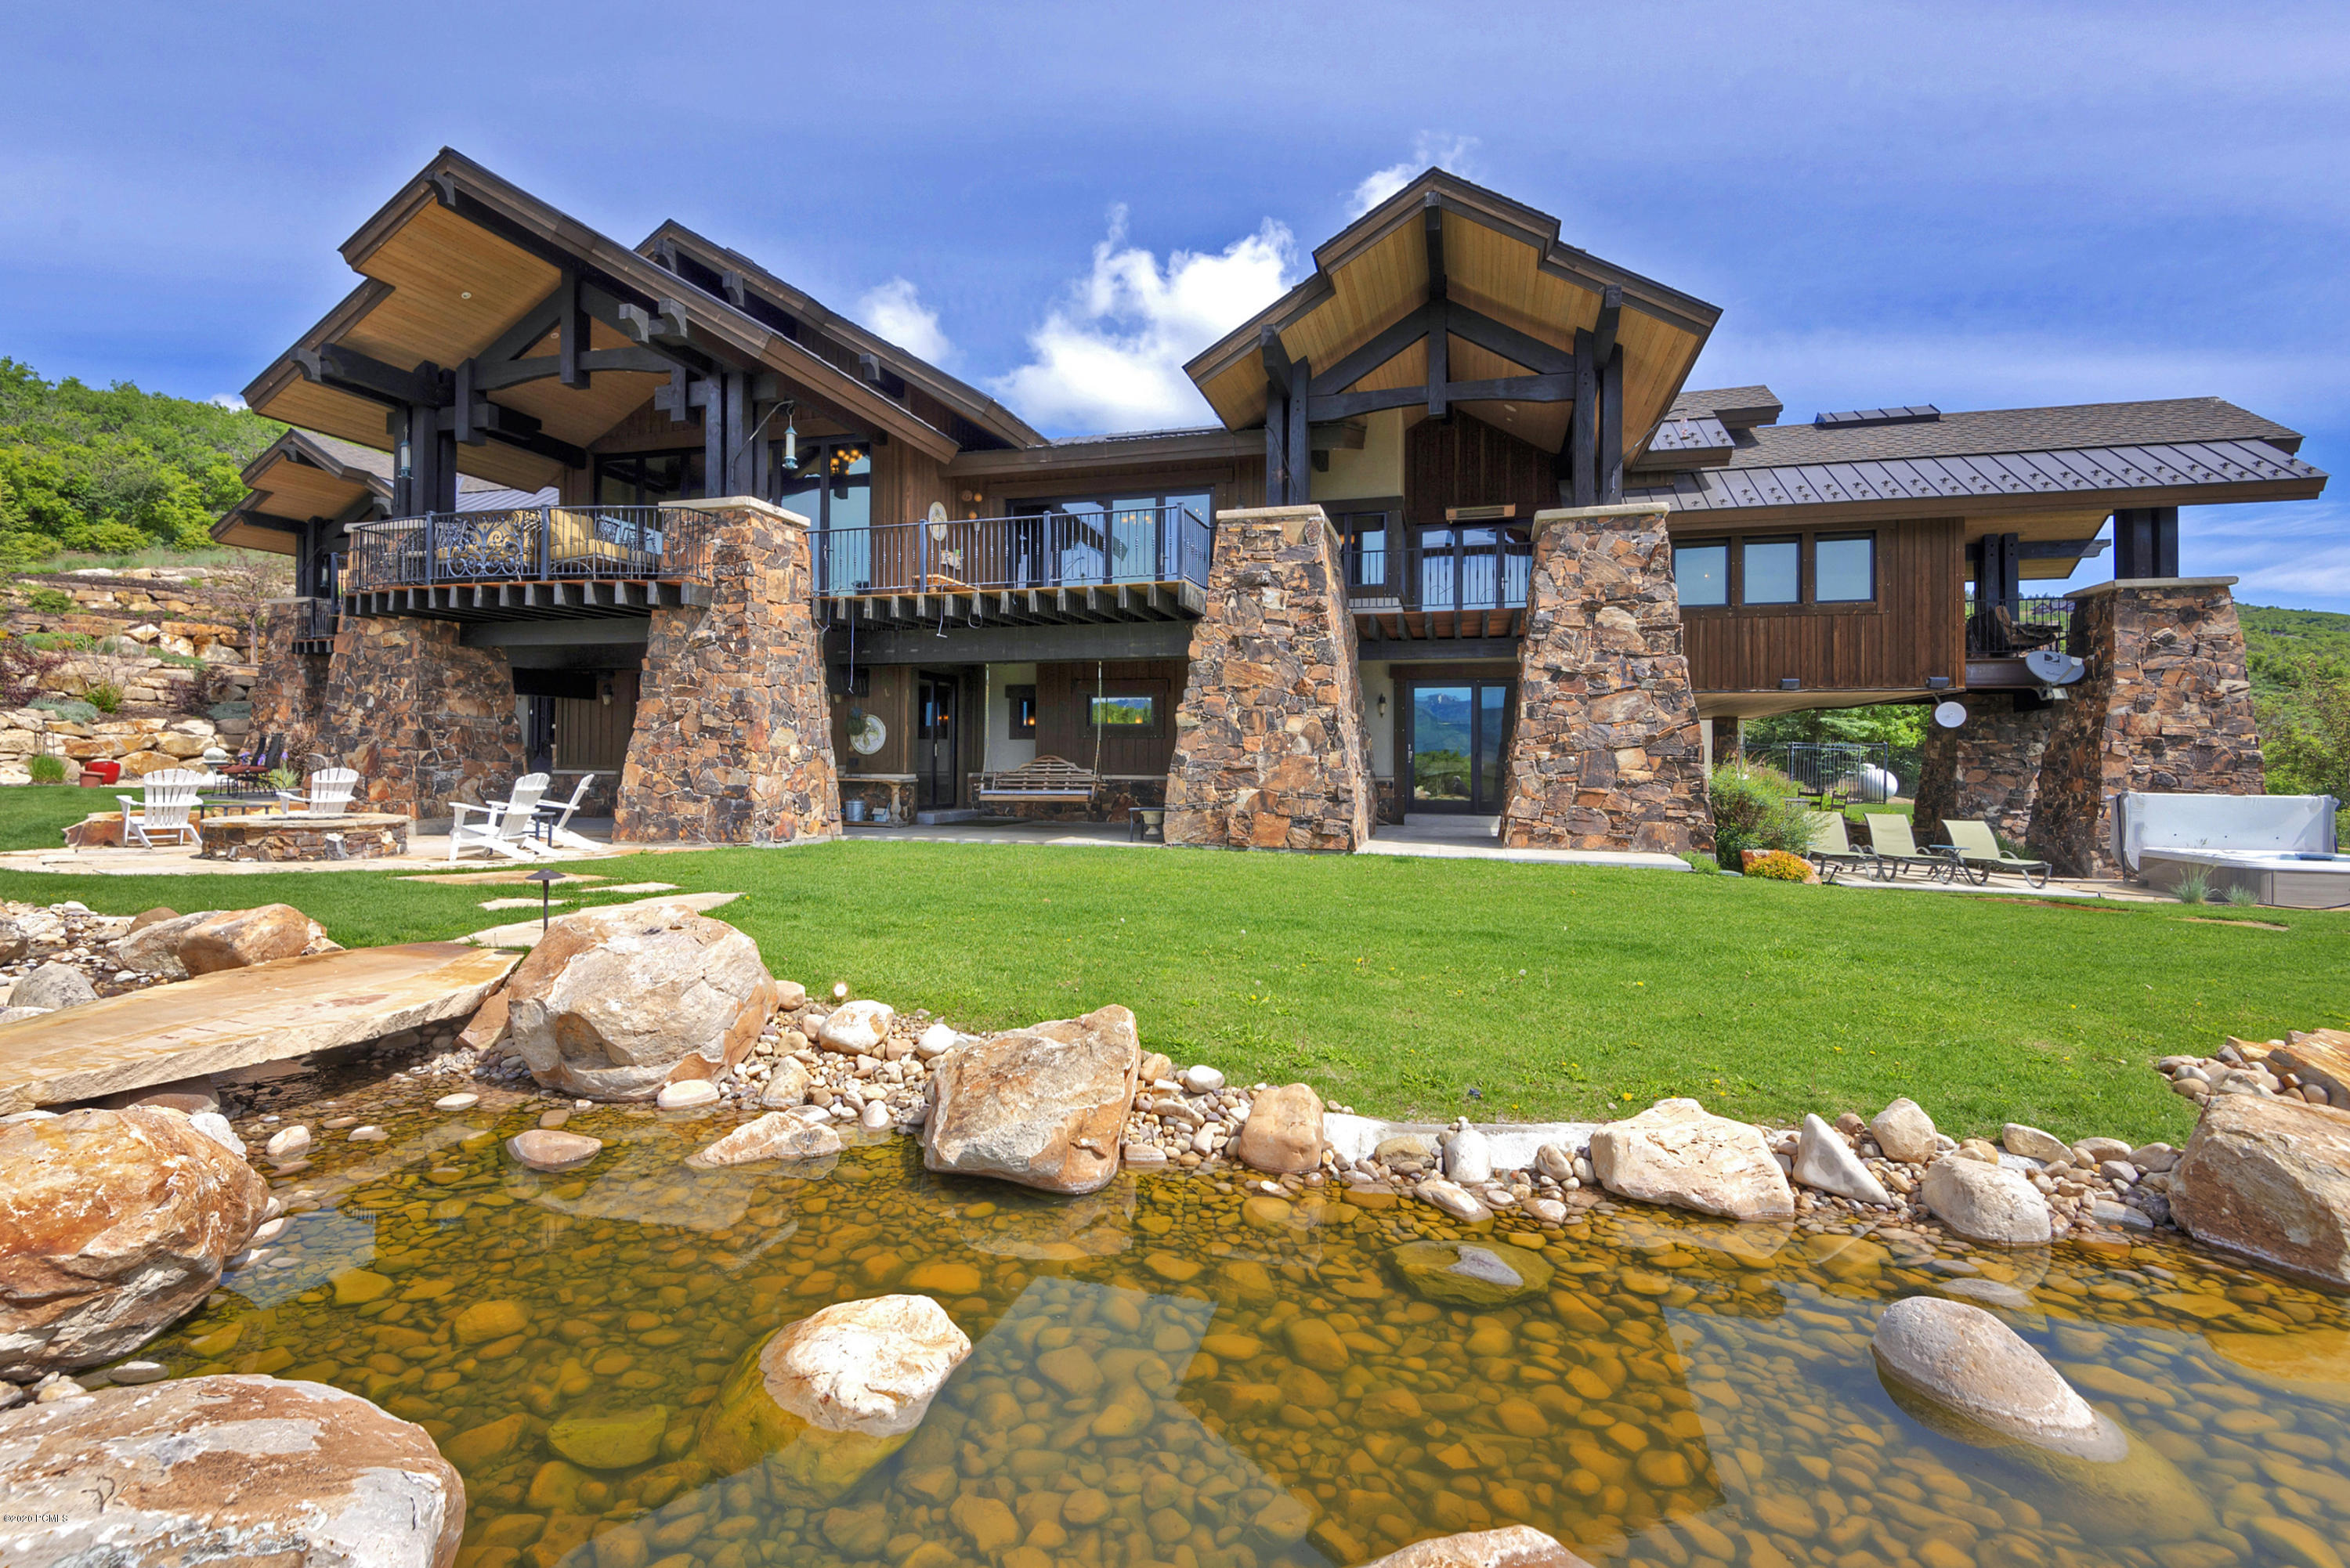 9356 Red Hawk Trail Trail, Park City, Utah 84098, 4 Bedrooms Bedrooms, ,8 BathroomsBathrooms,Single Family,For Sale,Red Hawk Trail,20190109112430415765000000